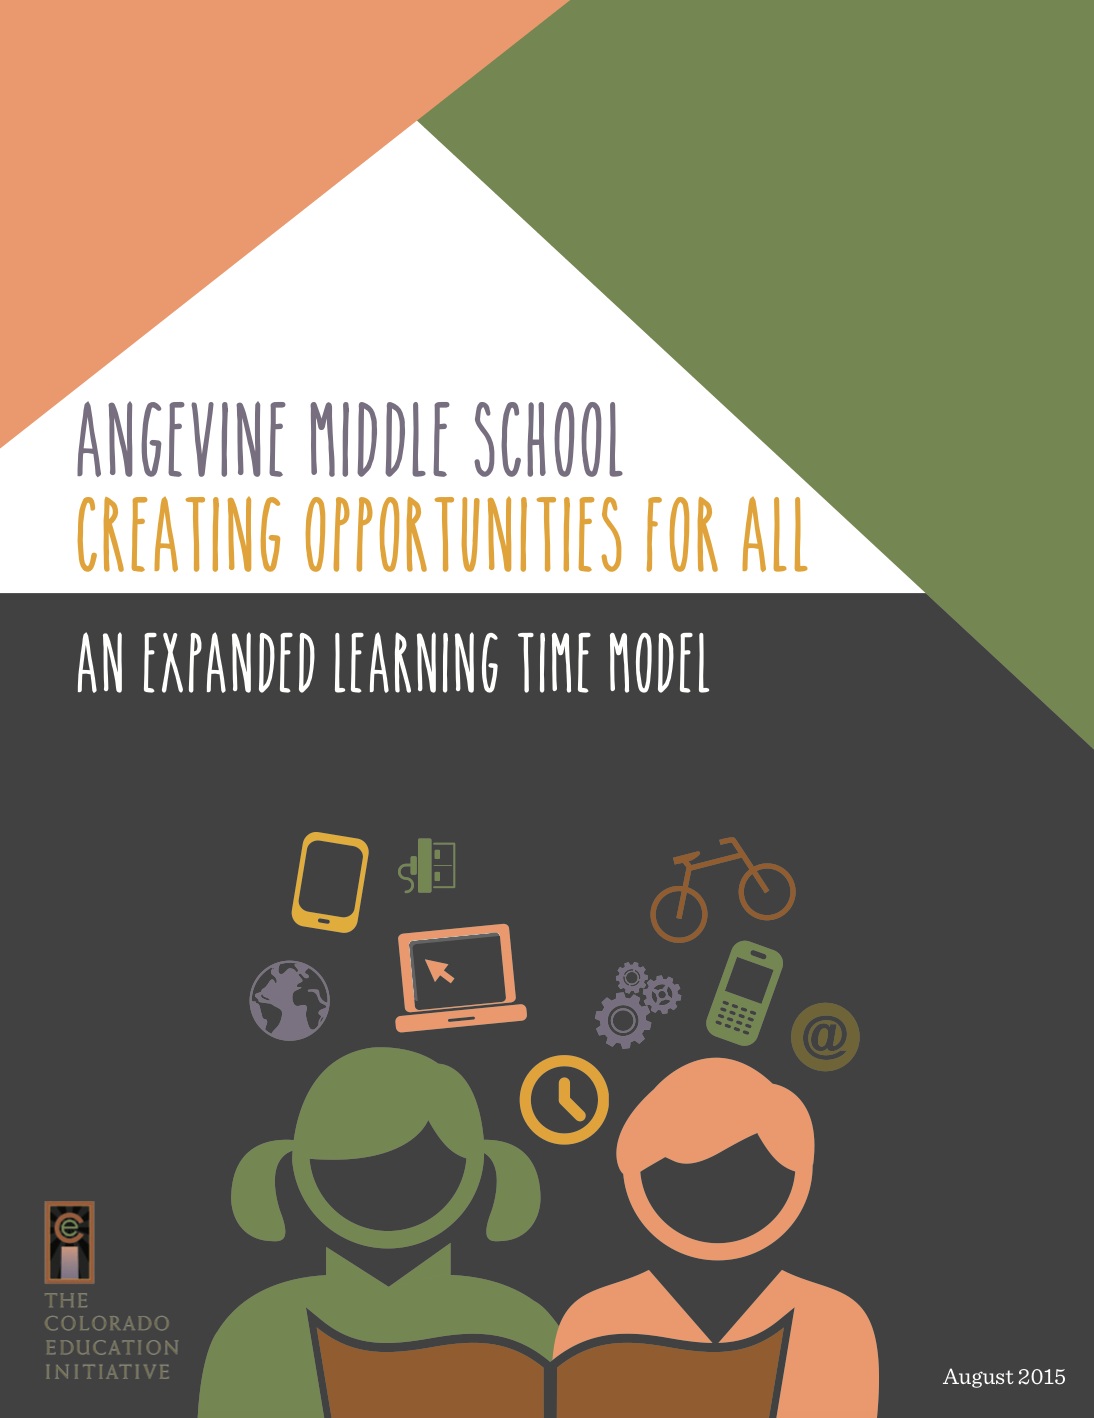 ANGEVINe middle school: creating opportunities for all, august 2015